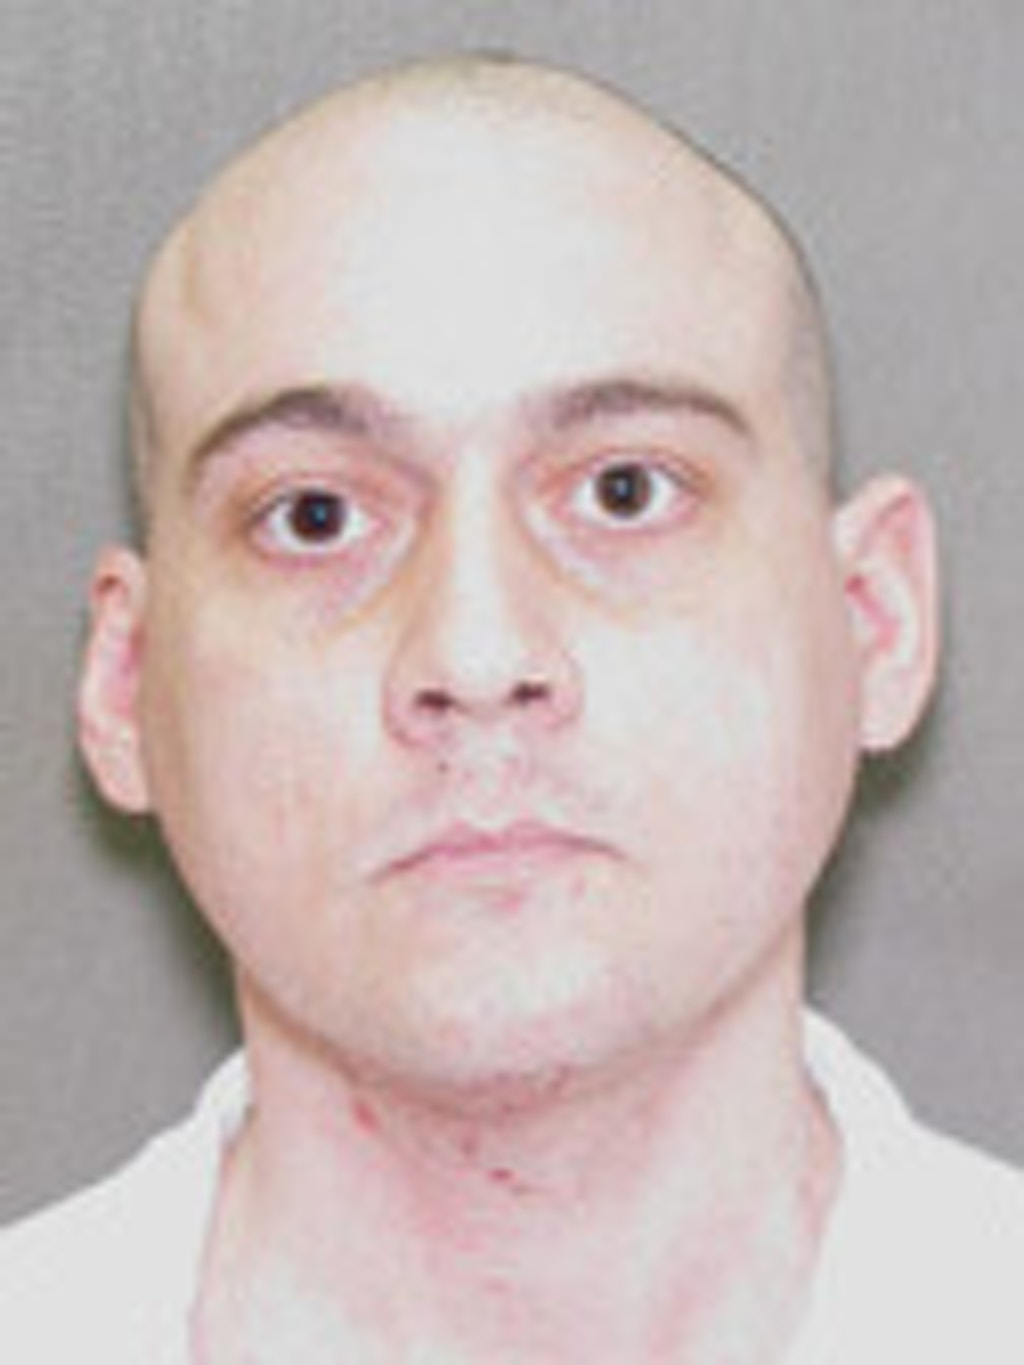 Texas Court Issues 60-Day Stay of Execution for John Hummel in Response to Coronavirus Crisis